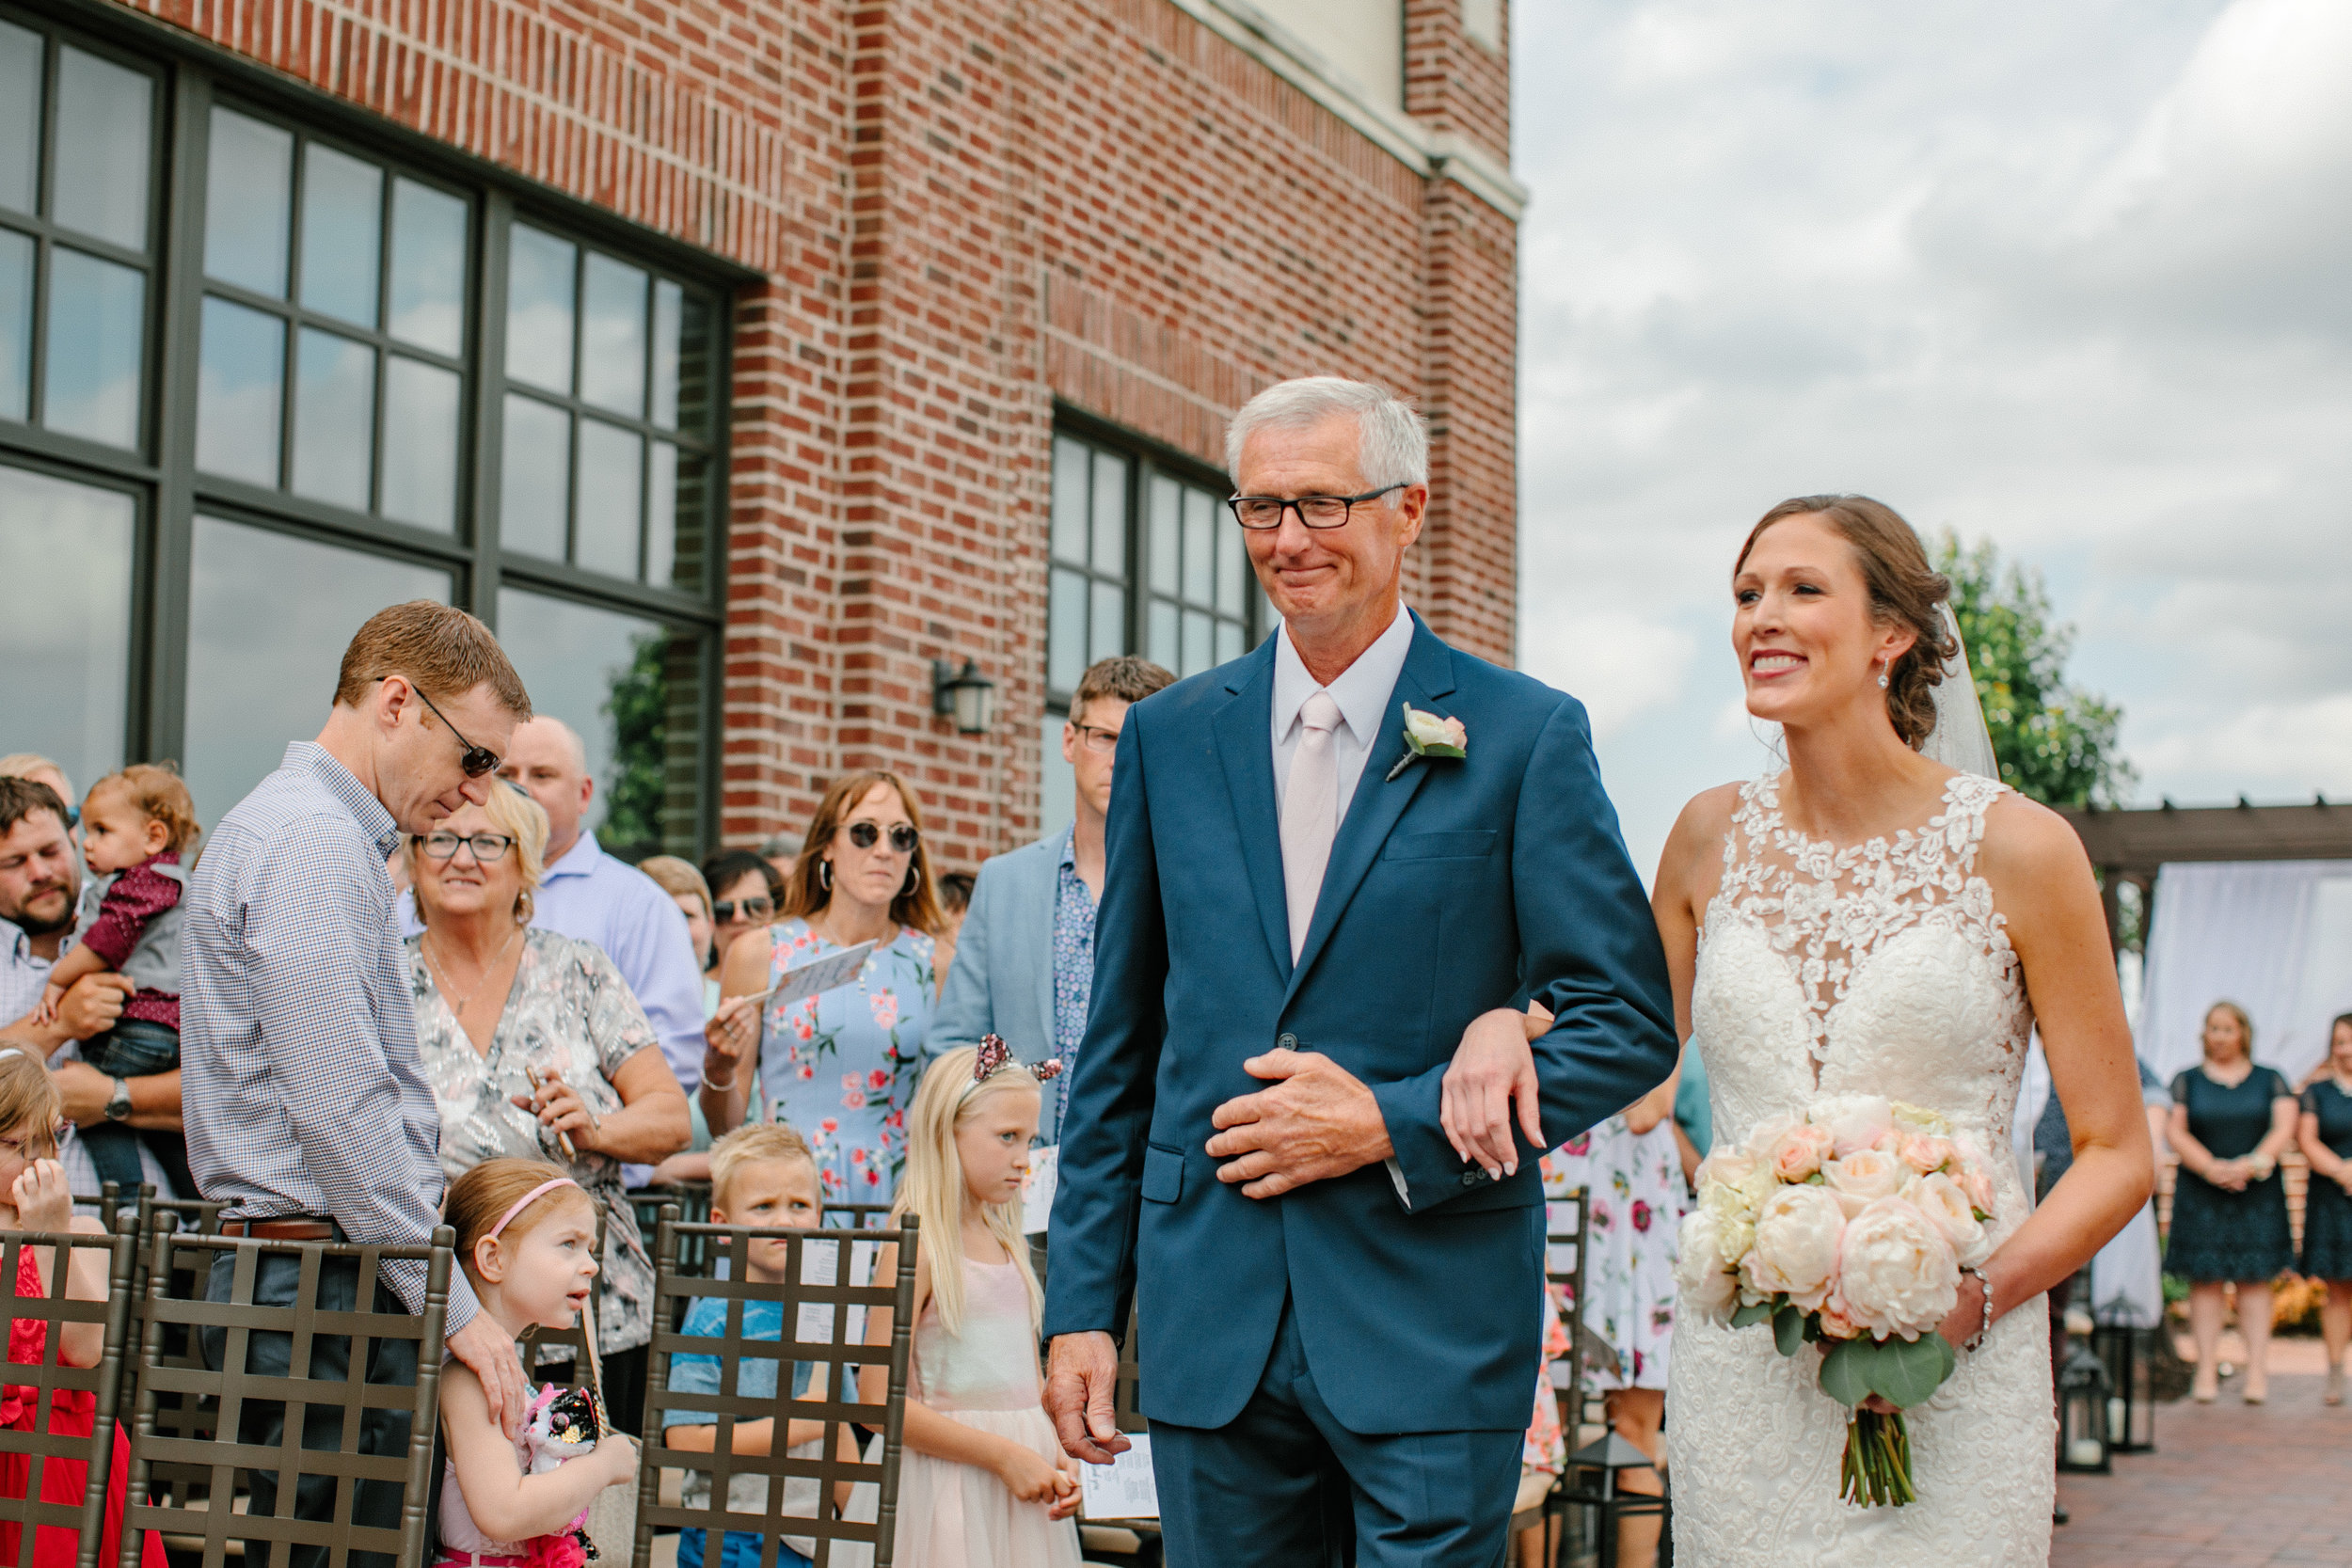 nicole_kyle_west_des_moines_iowa_wedding_photographers_42.jpg